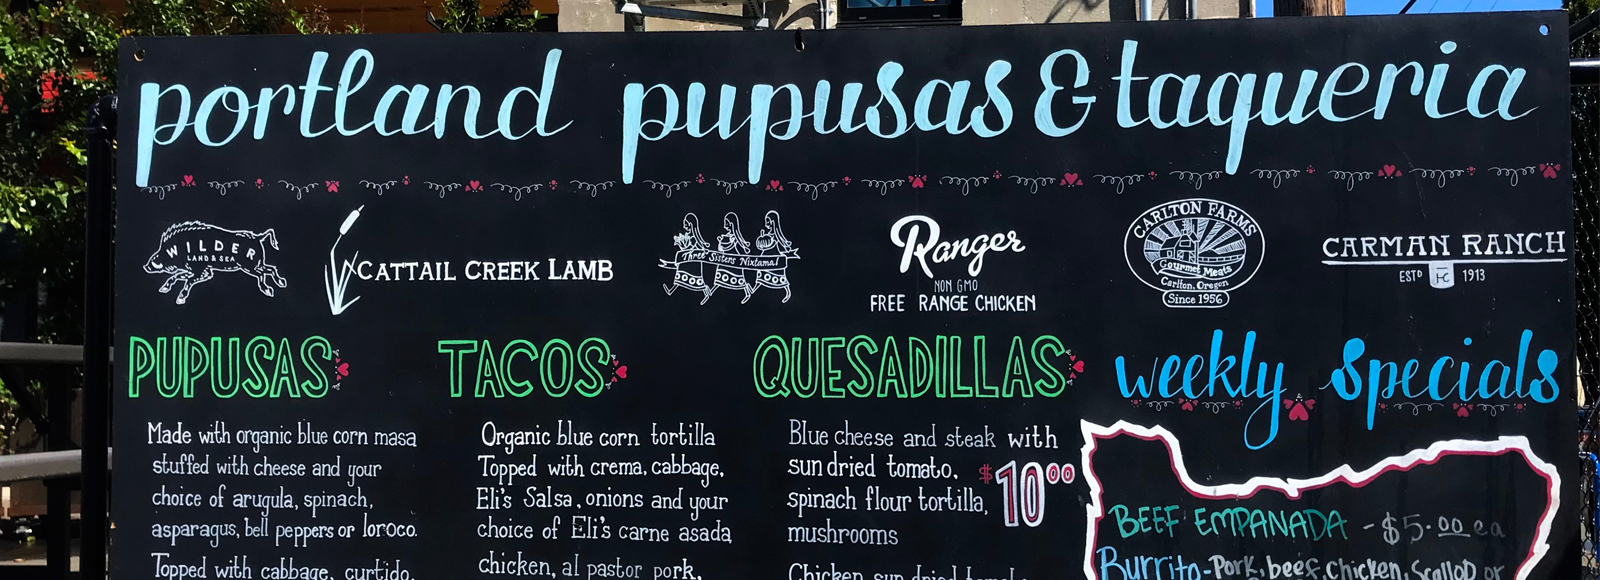 A menu board shows a selection of pupusas, tacos, and quesadillas.